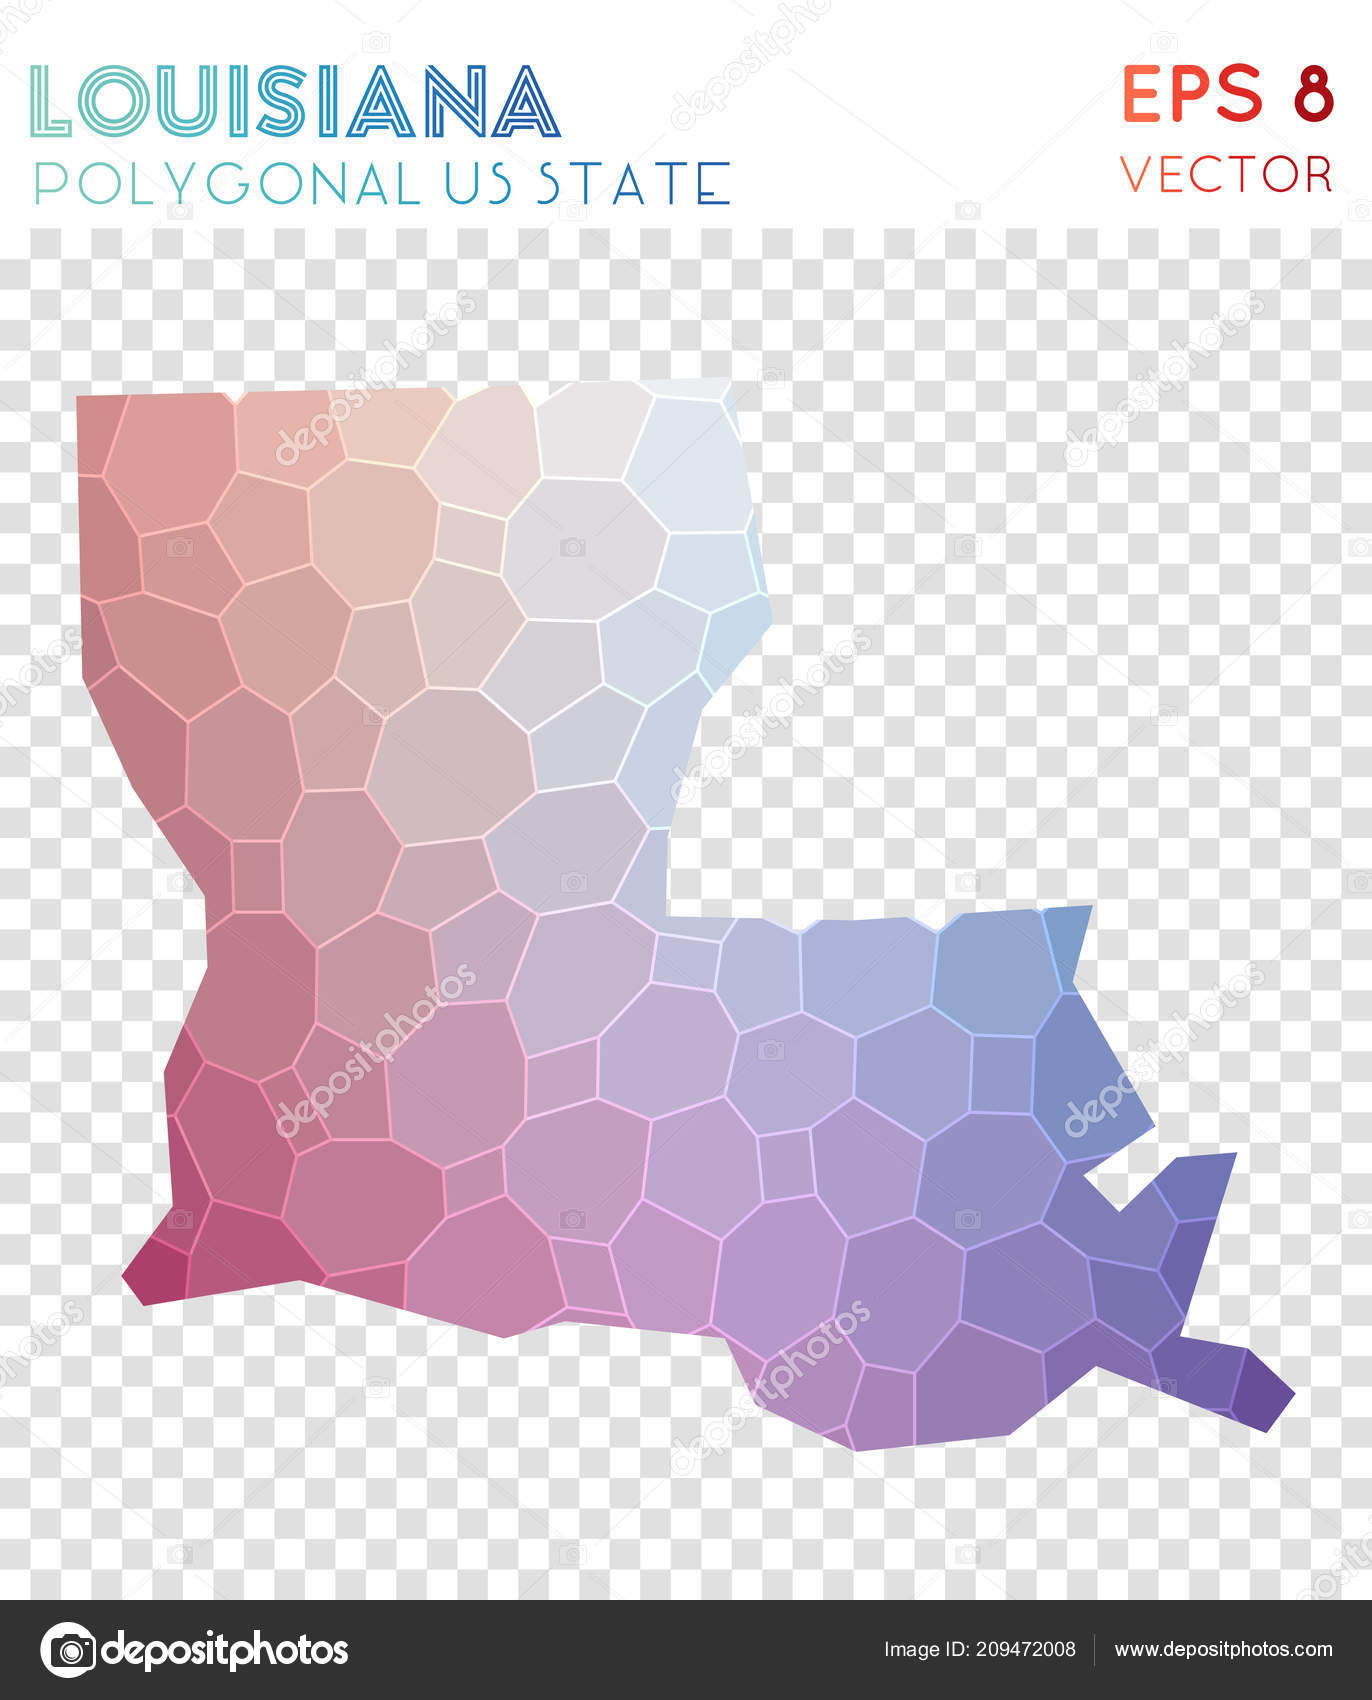 Louisiana Polygonal Map, Mosaic Style Us State. Valuable Low Poly Style,  Modern Design. Louisiana Polygonal Map For Infographics Or Presentation. U2014  Vetor De ...